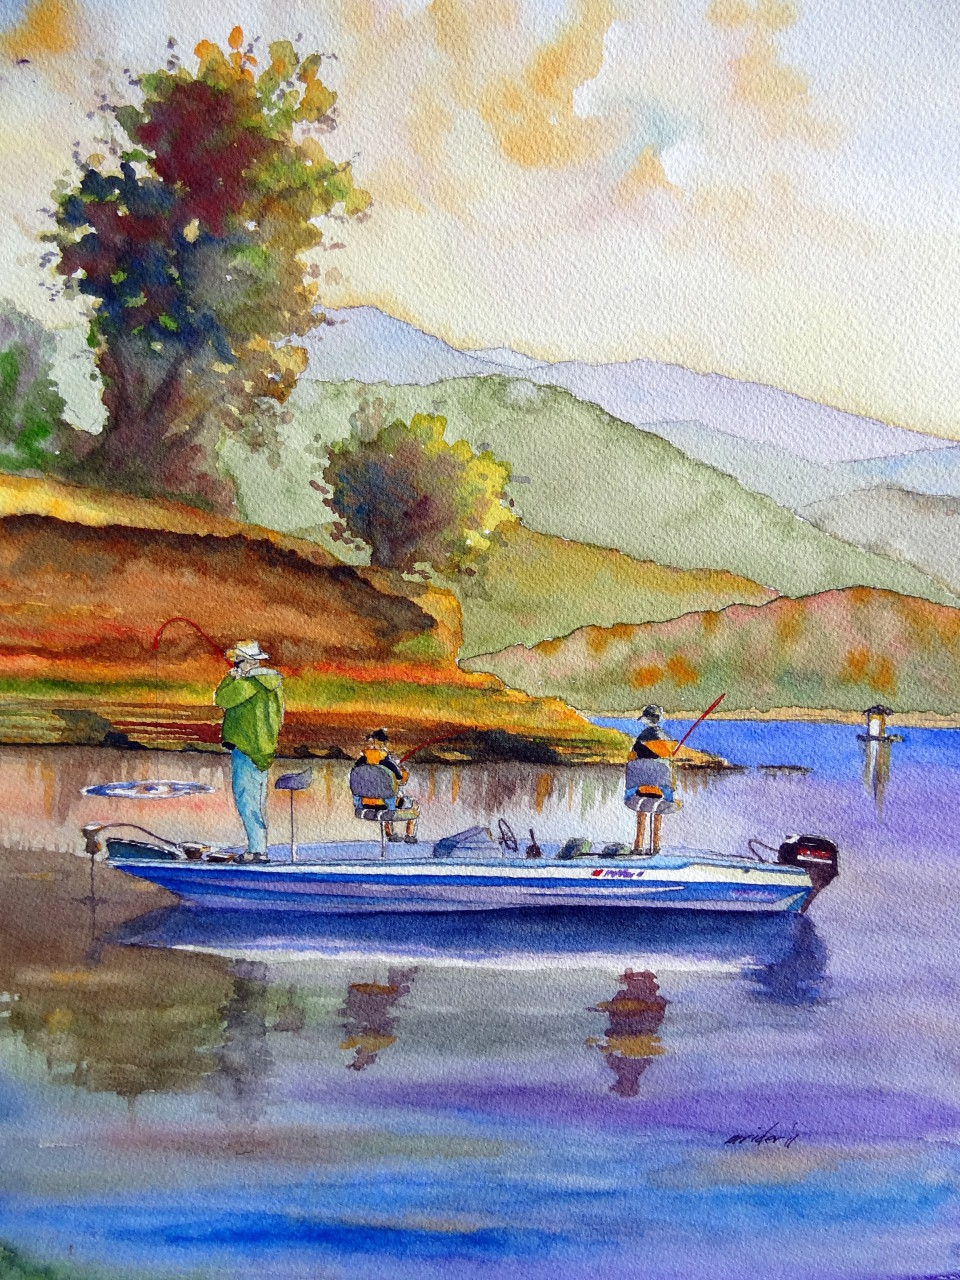 Lake Cachuma Fishermen